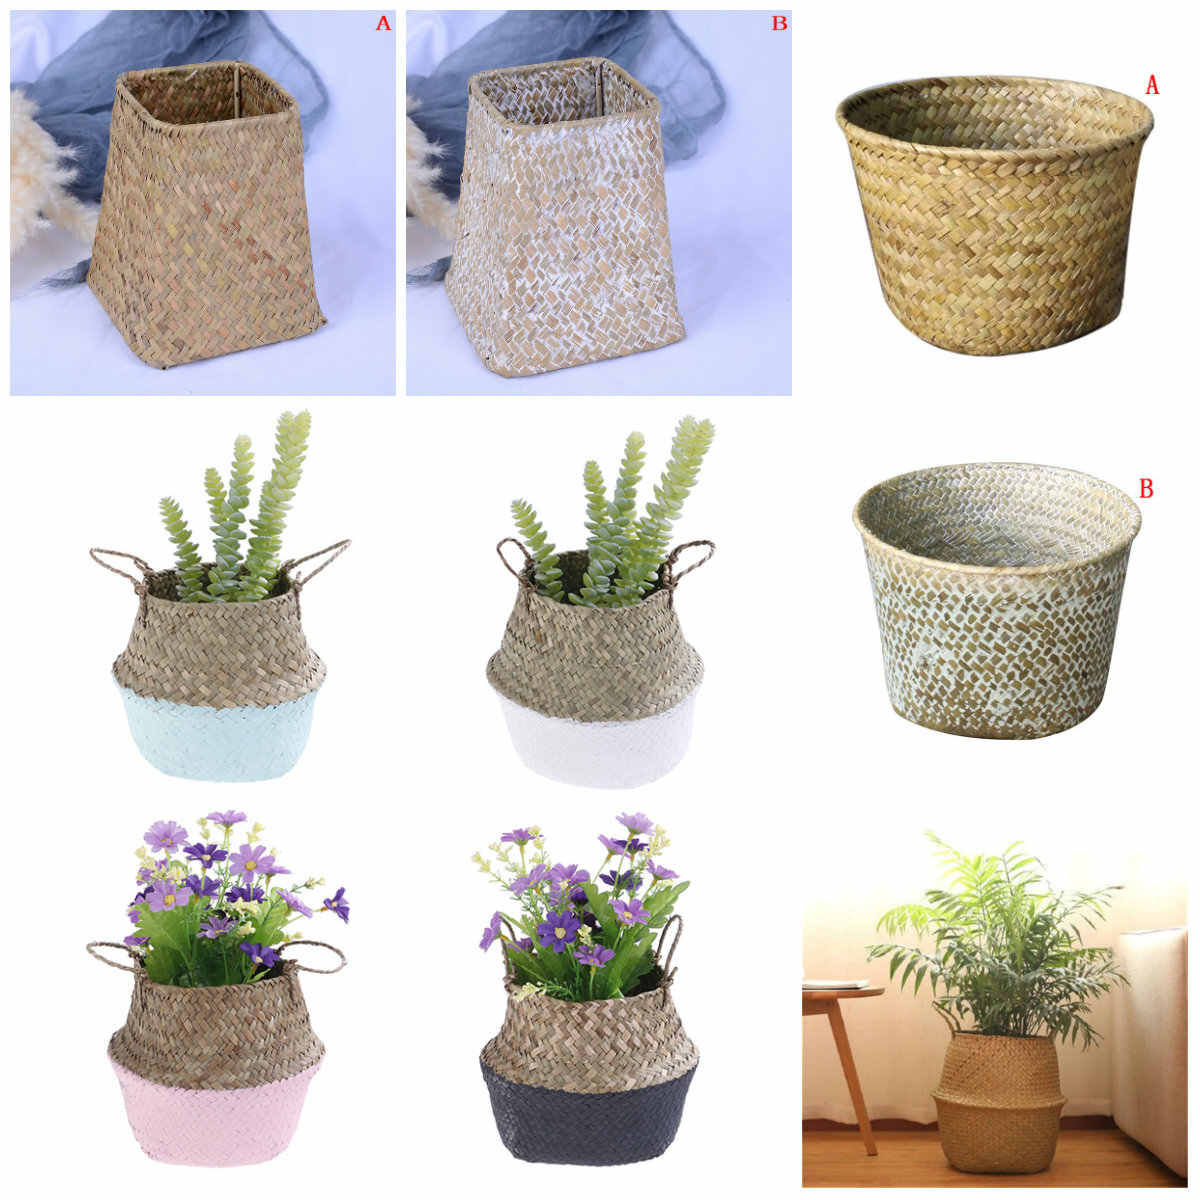 New Flower Pot Storage Basket Rattan Straw Basket Seagrasss Wicker Folding Laundry Flower Vase Garden Hanging Basket Wedding hot